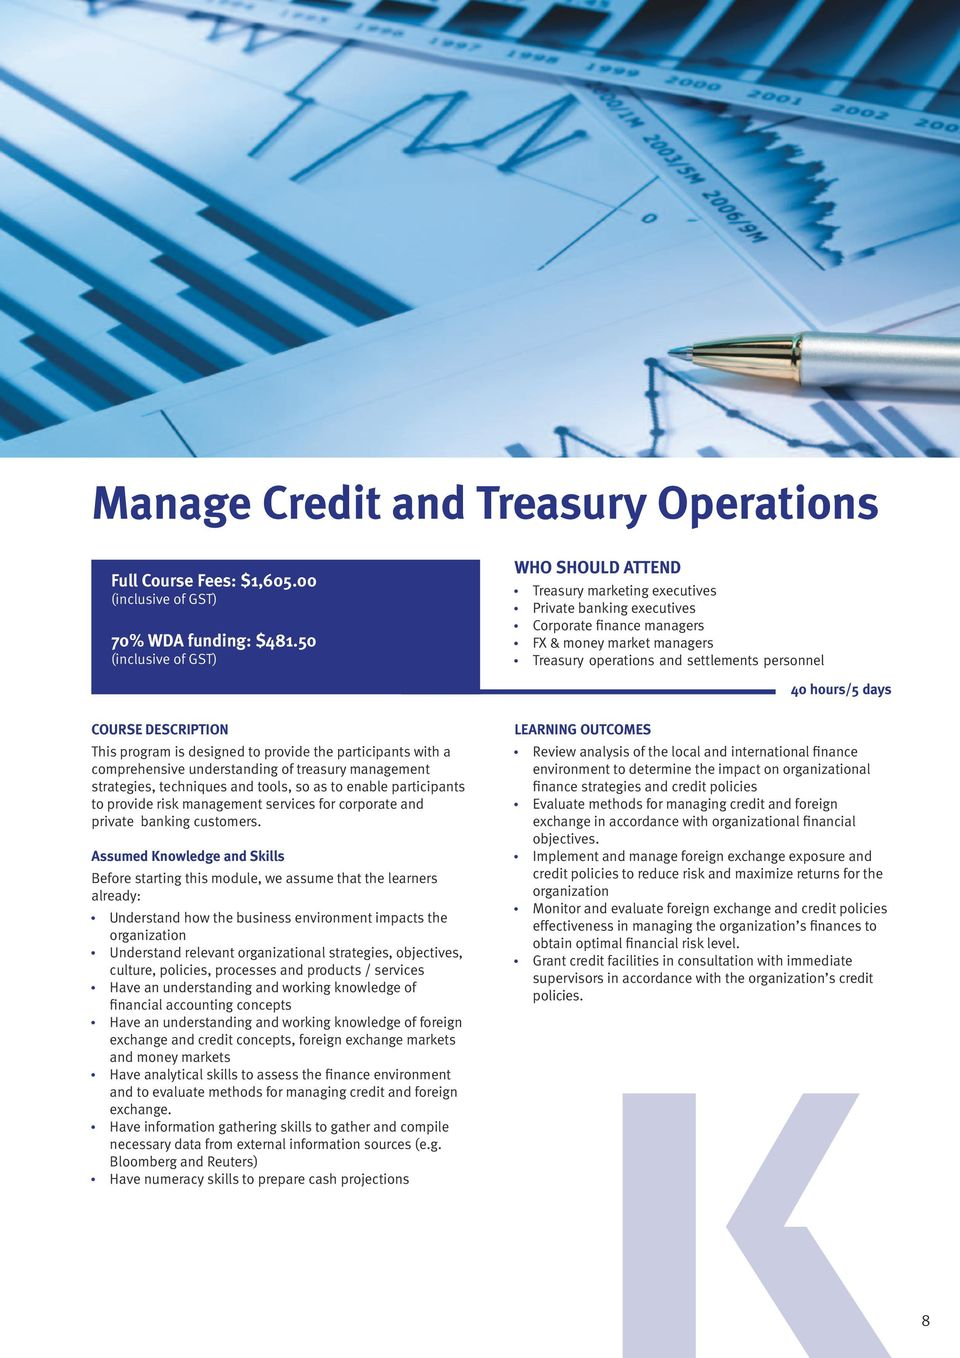 designed to provide the participants with a comprehensive understanding of treasury management strategies, techniques and tools, so as to enable participants to provide risk management services for